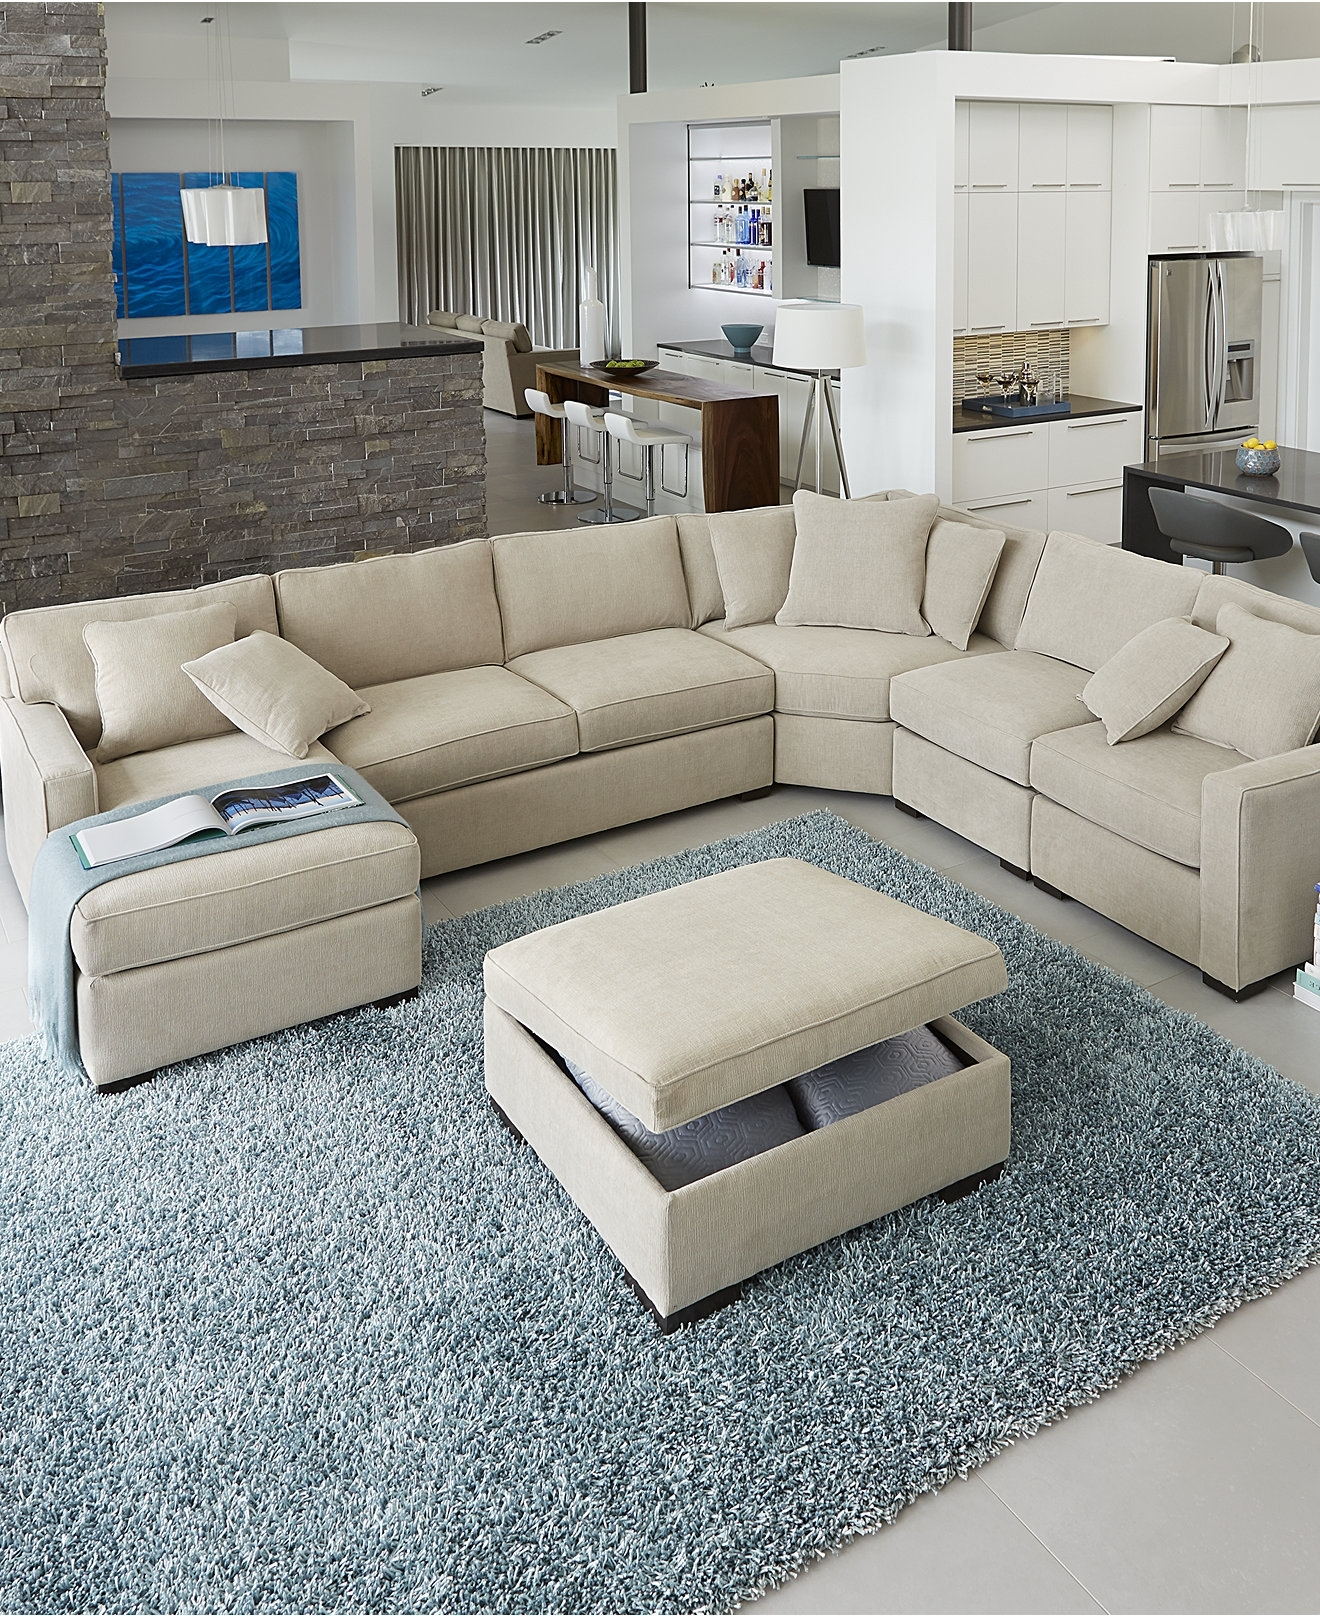 Radley Fabricectionalofa Collection Created For Macys Blue Living With Popular Sectional Sofas In Philippines (View 12 of 20)